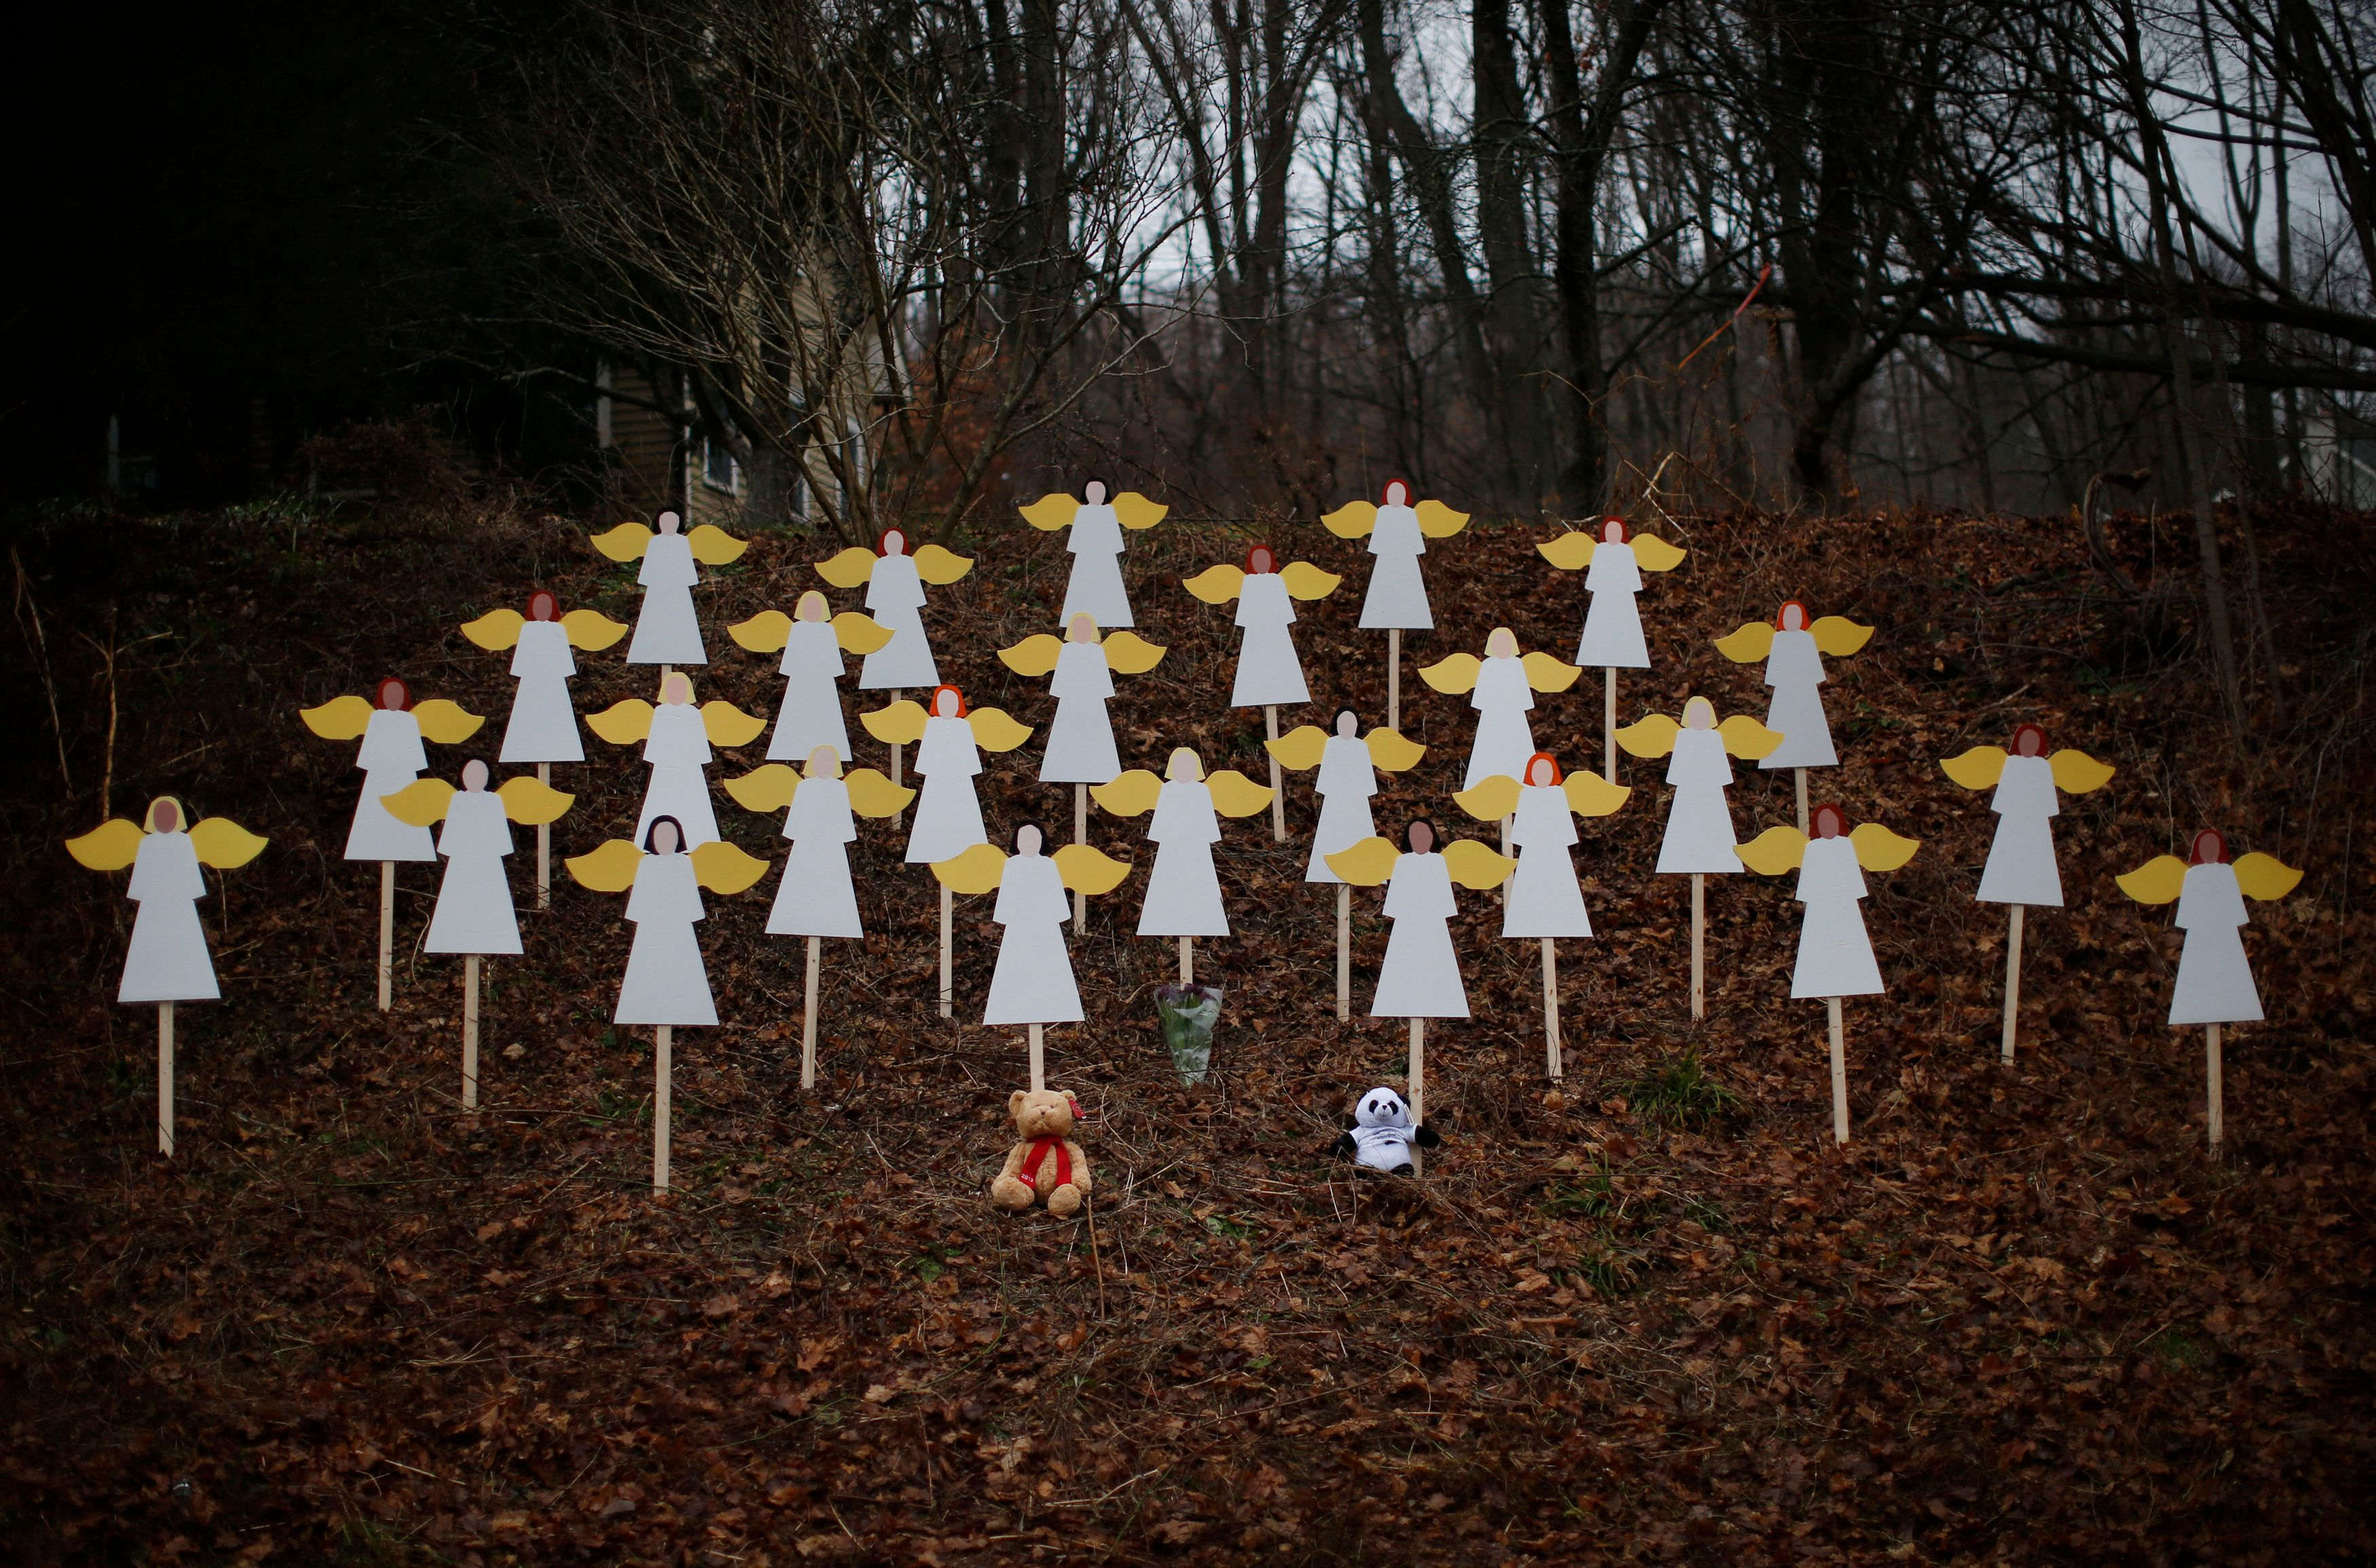 A memorial for the Sandy Hook victims, shown days after the December 2012 shooting.